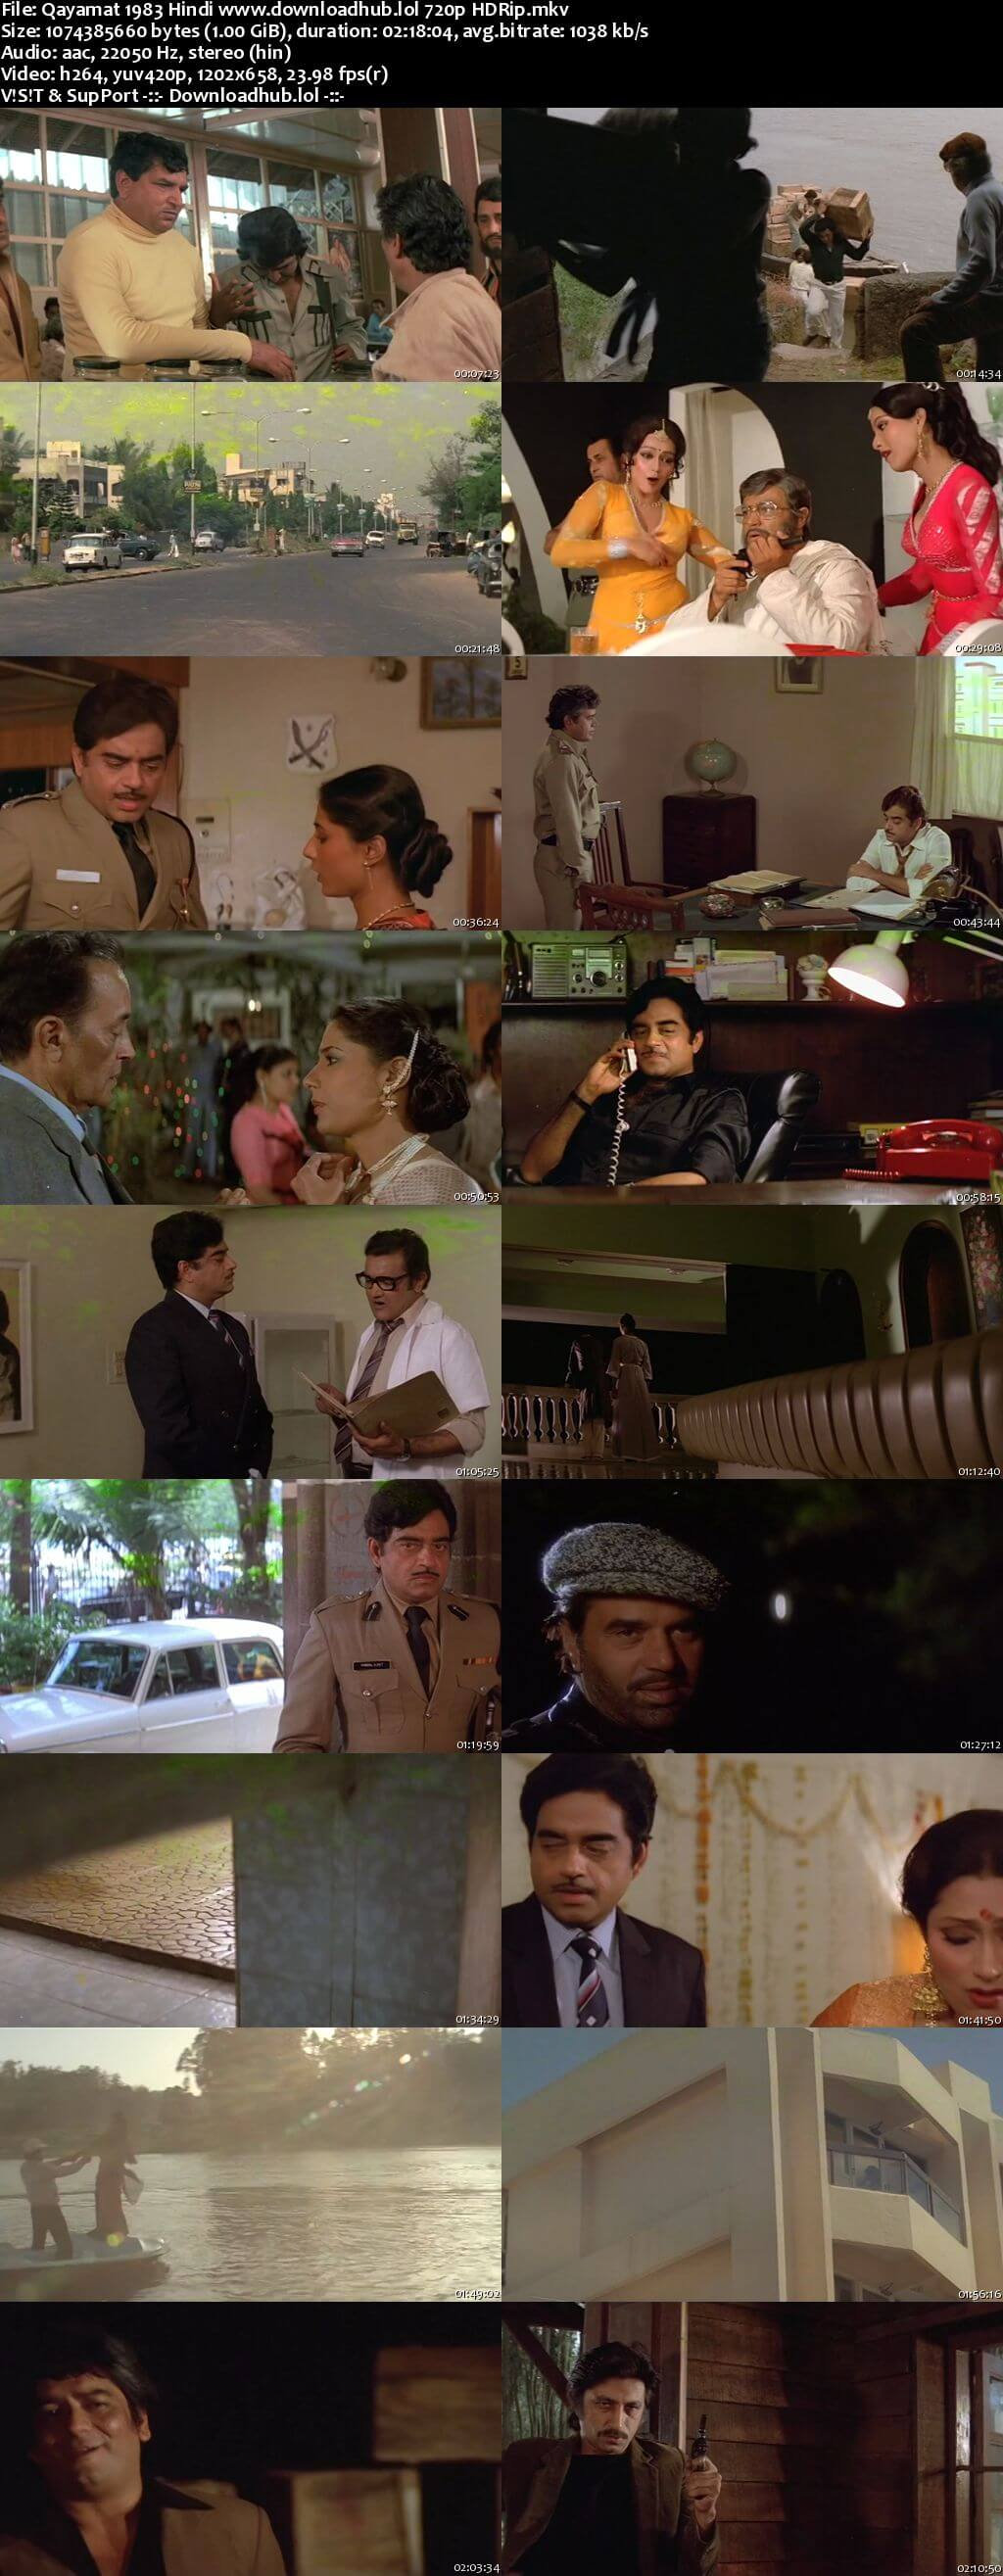 Qayamat 1983 Hindi 720p HDRip x264